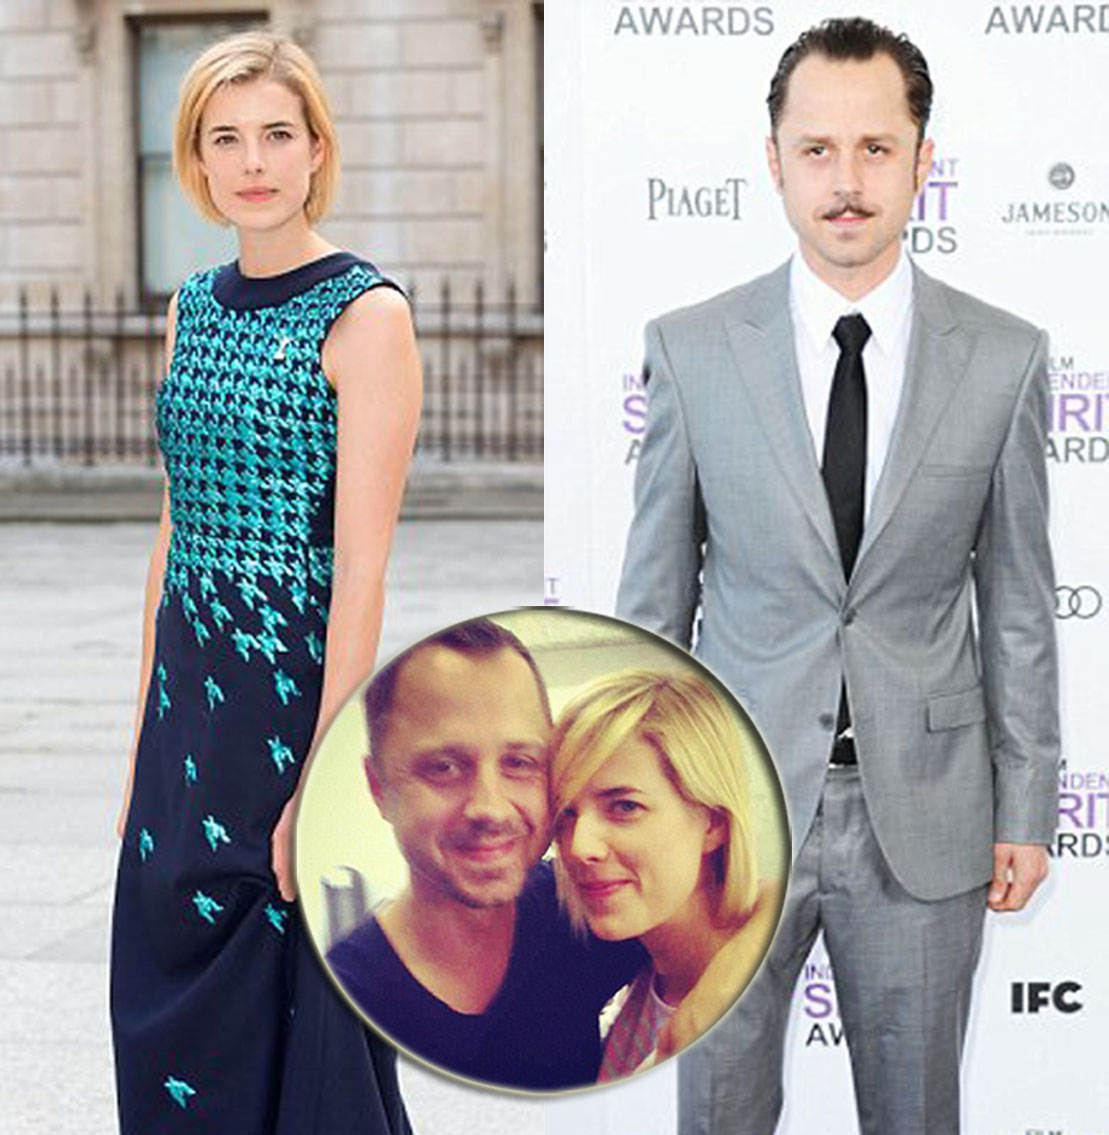 Agyness Deyn opens up about surprise marriage and Scientology rumours Agyness Deyn opens up about surprise marriage and Scientology rumours new picture